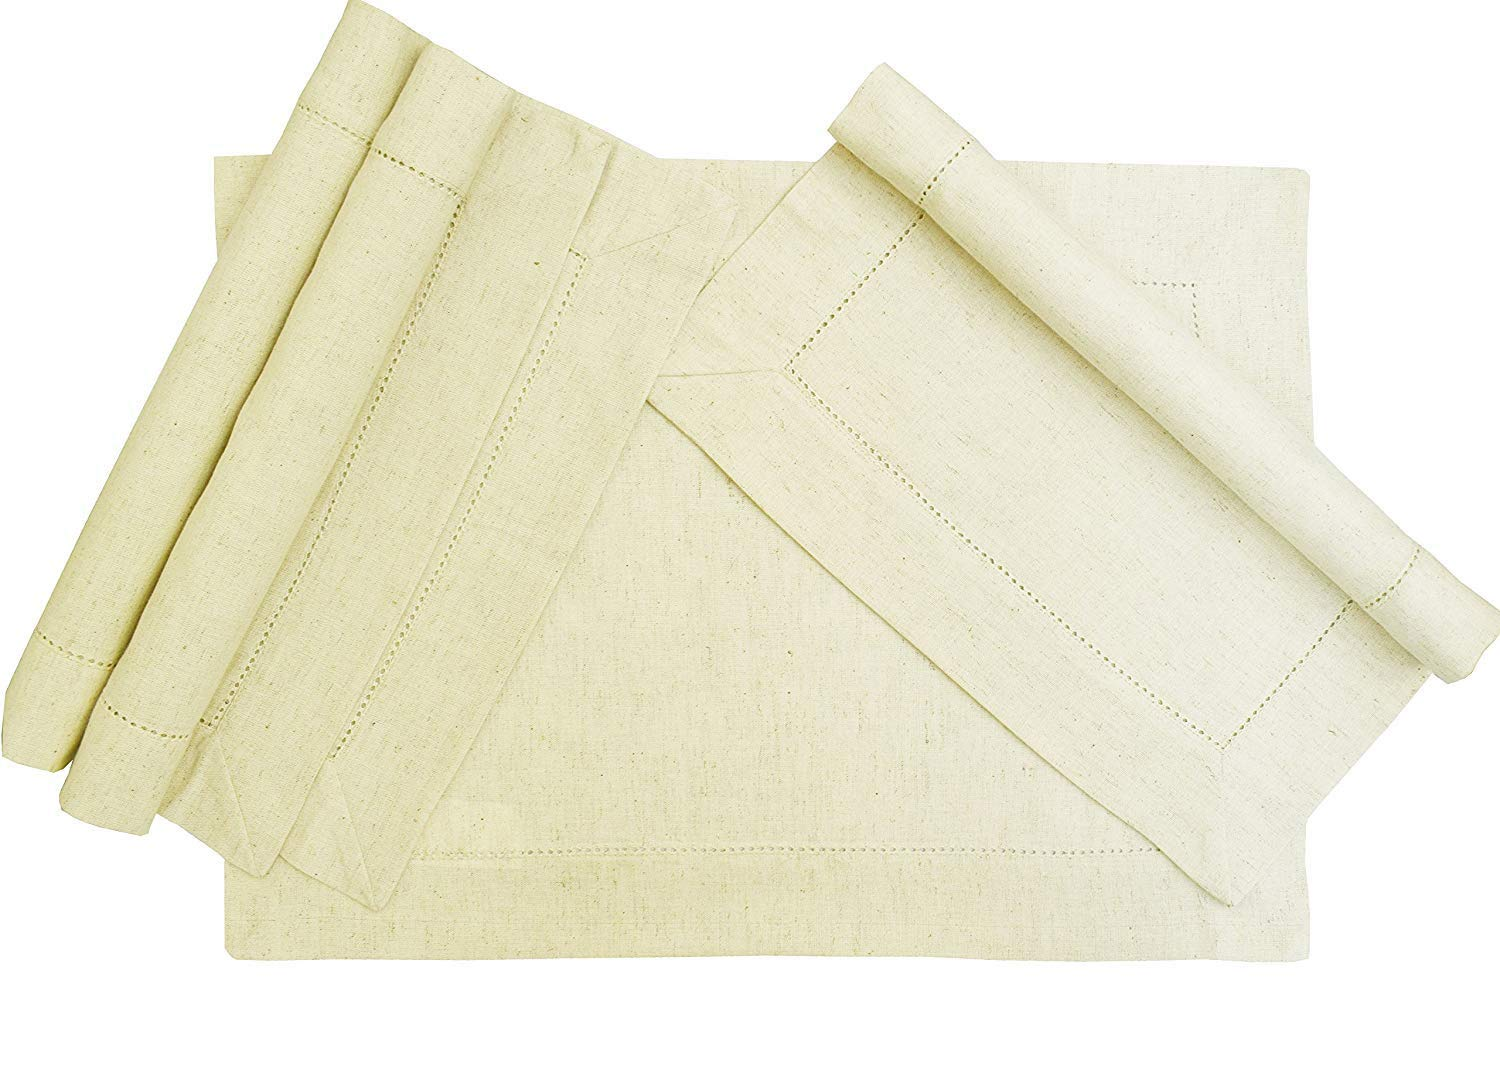 Light & Pro 4Pack Flax by Flax -30% Linen,70% cotton -Placemat for Dining Table, Kitchen Table, Perfect for Fall,Dinner Parties, BBQs and Everyday Use -14x19 inch Natural